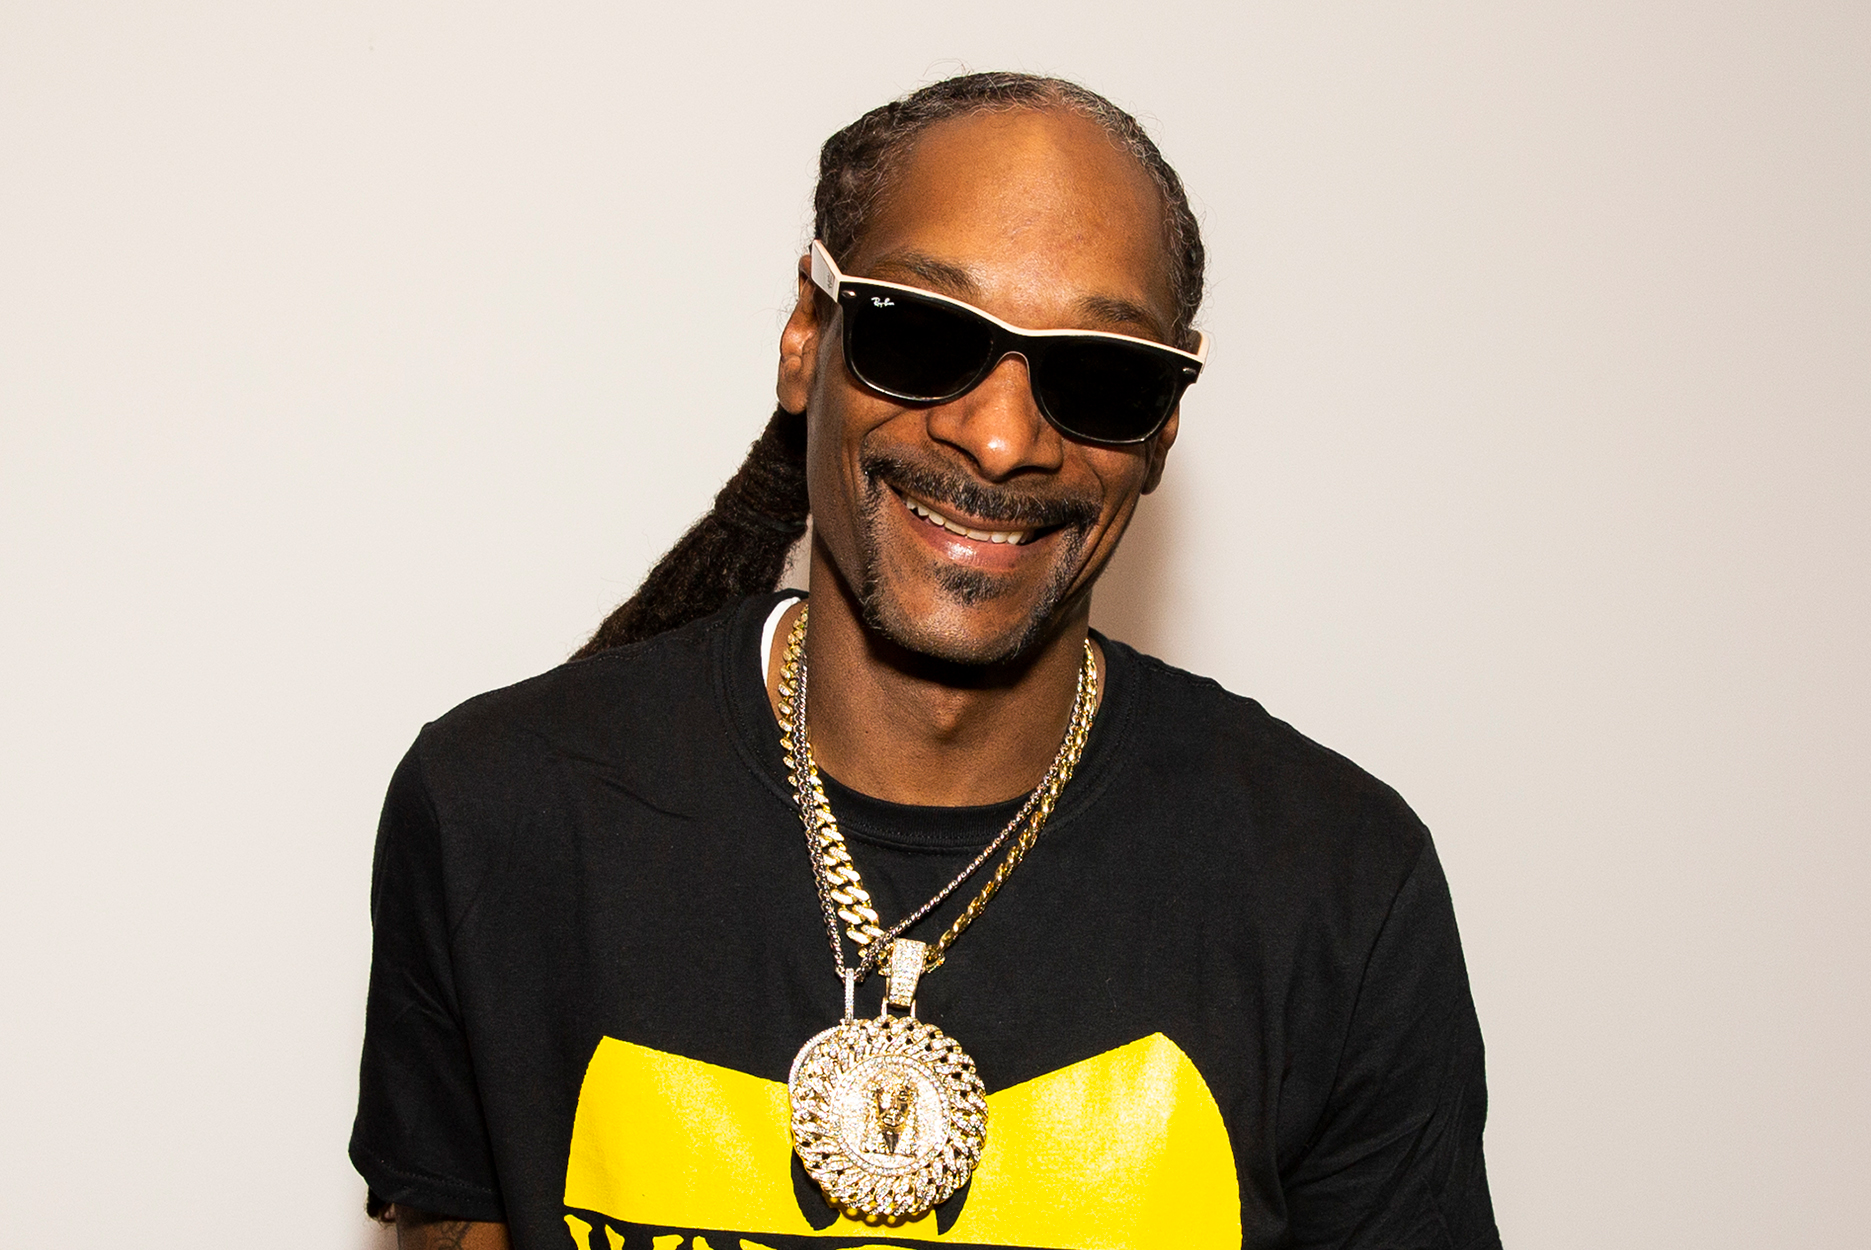 Snoop Dogg Will Release His Own Wine This Summer